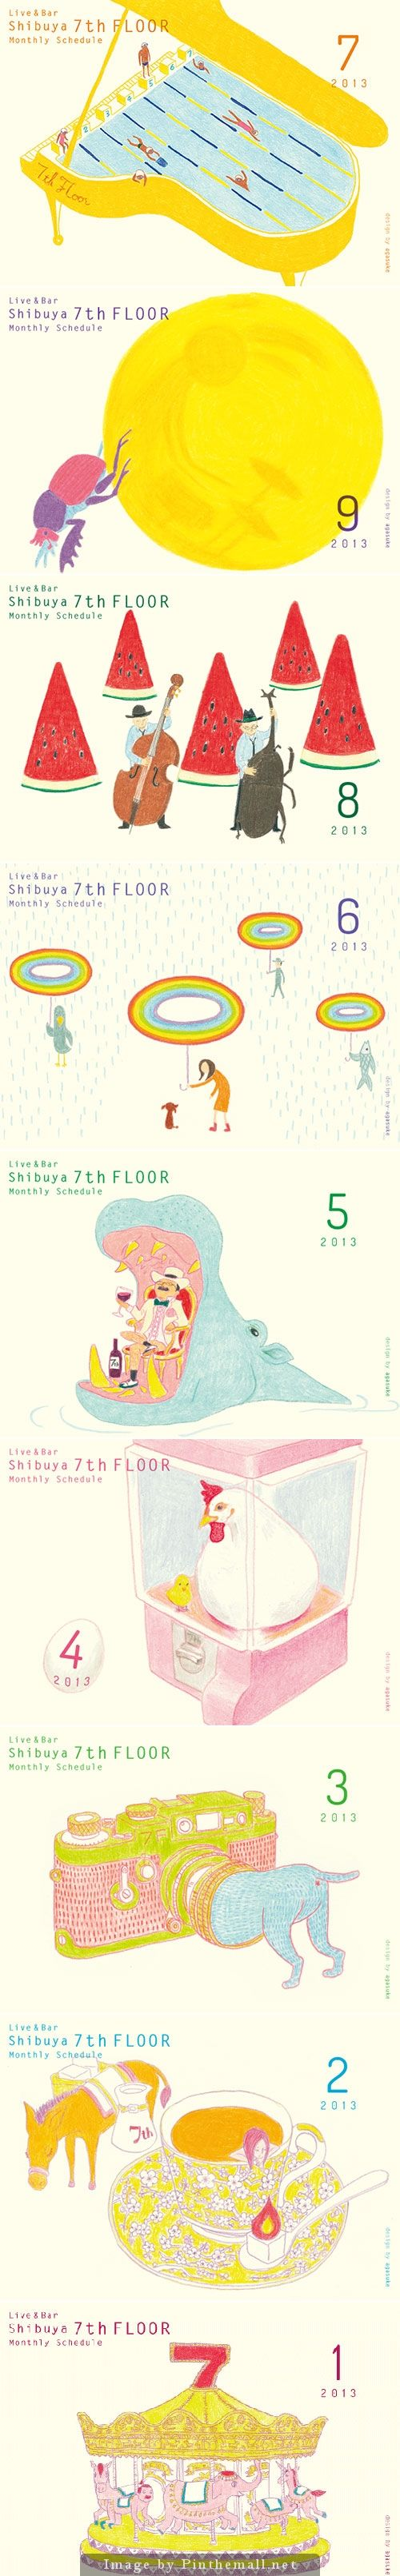 """7th Floor"" by Naoya Agasuke"